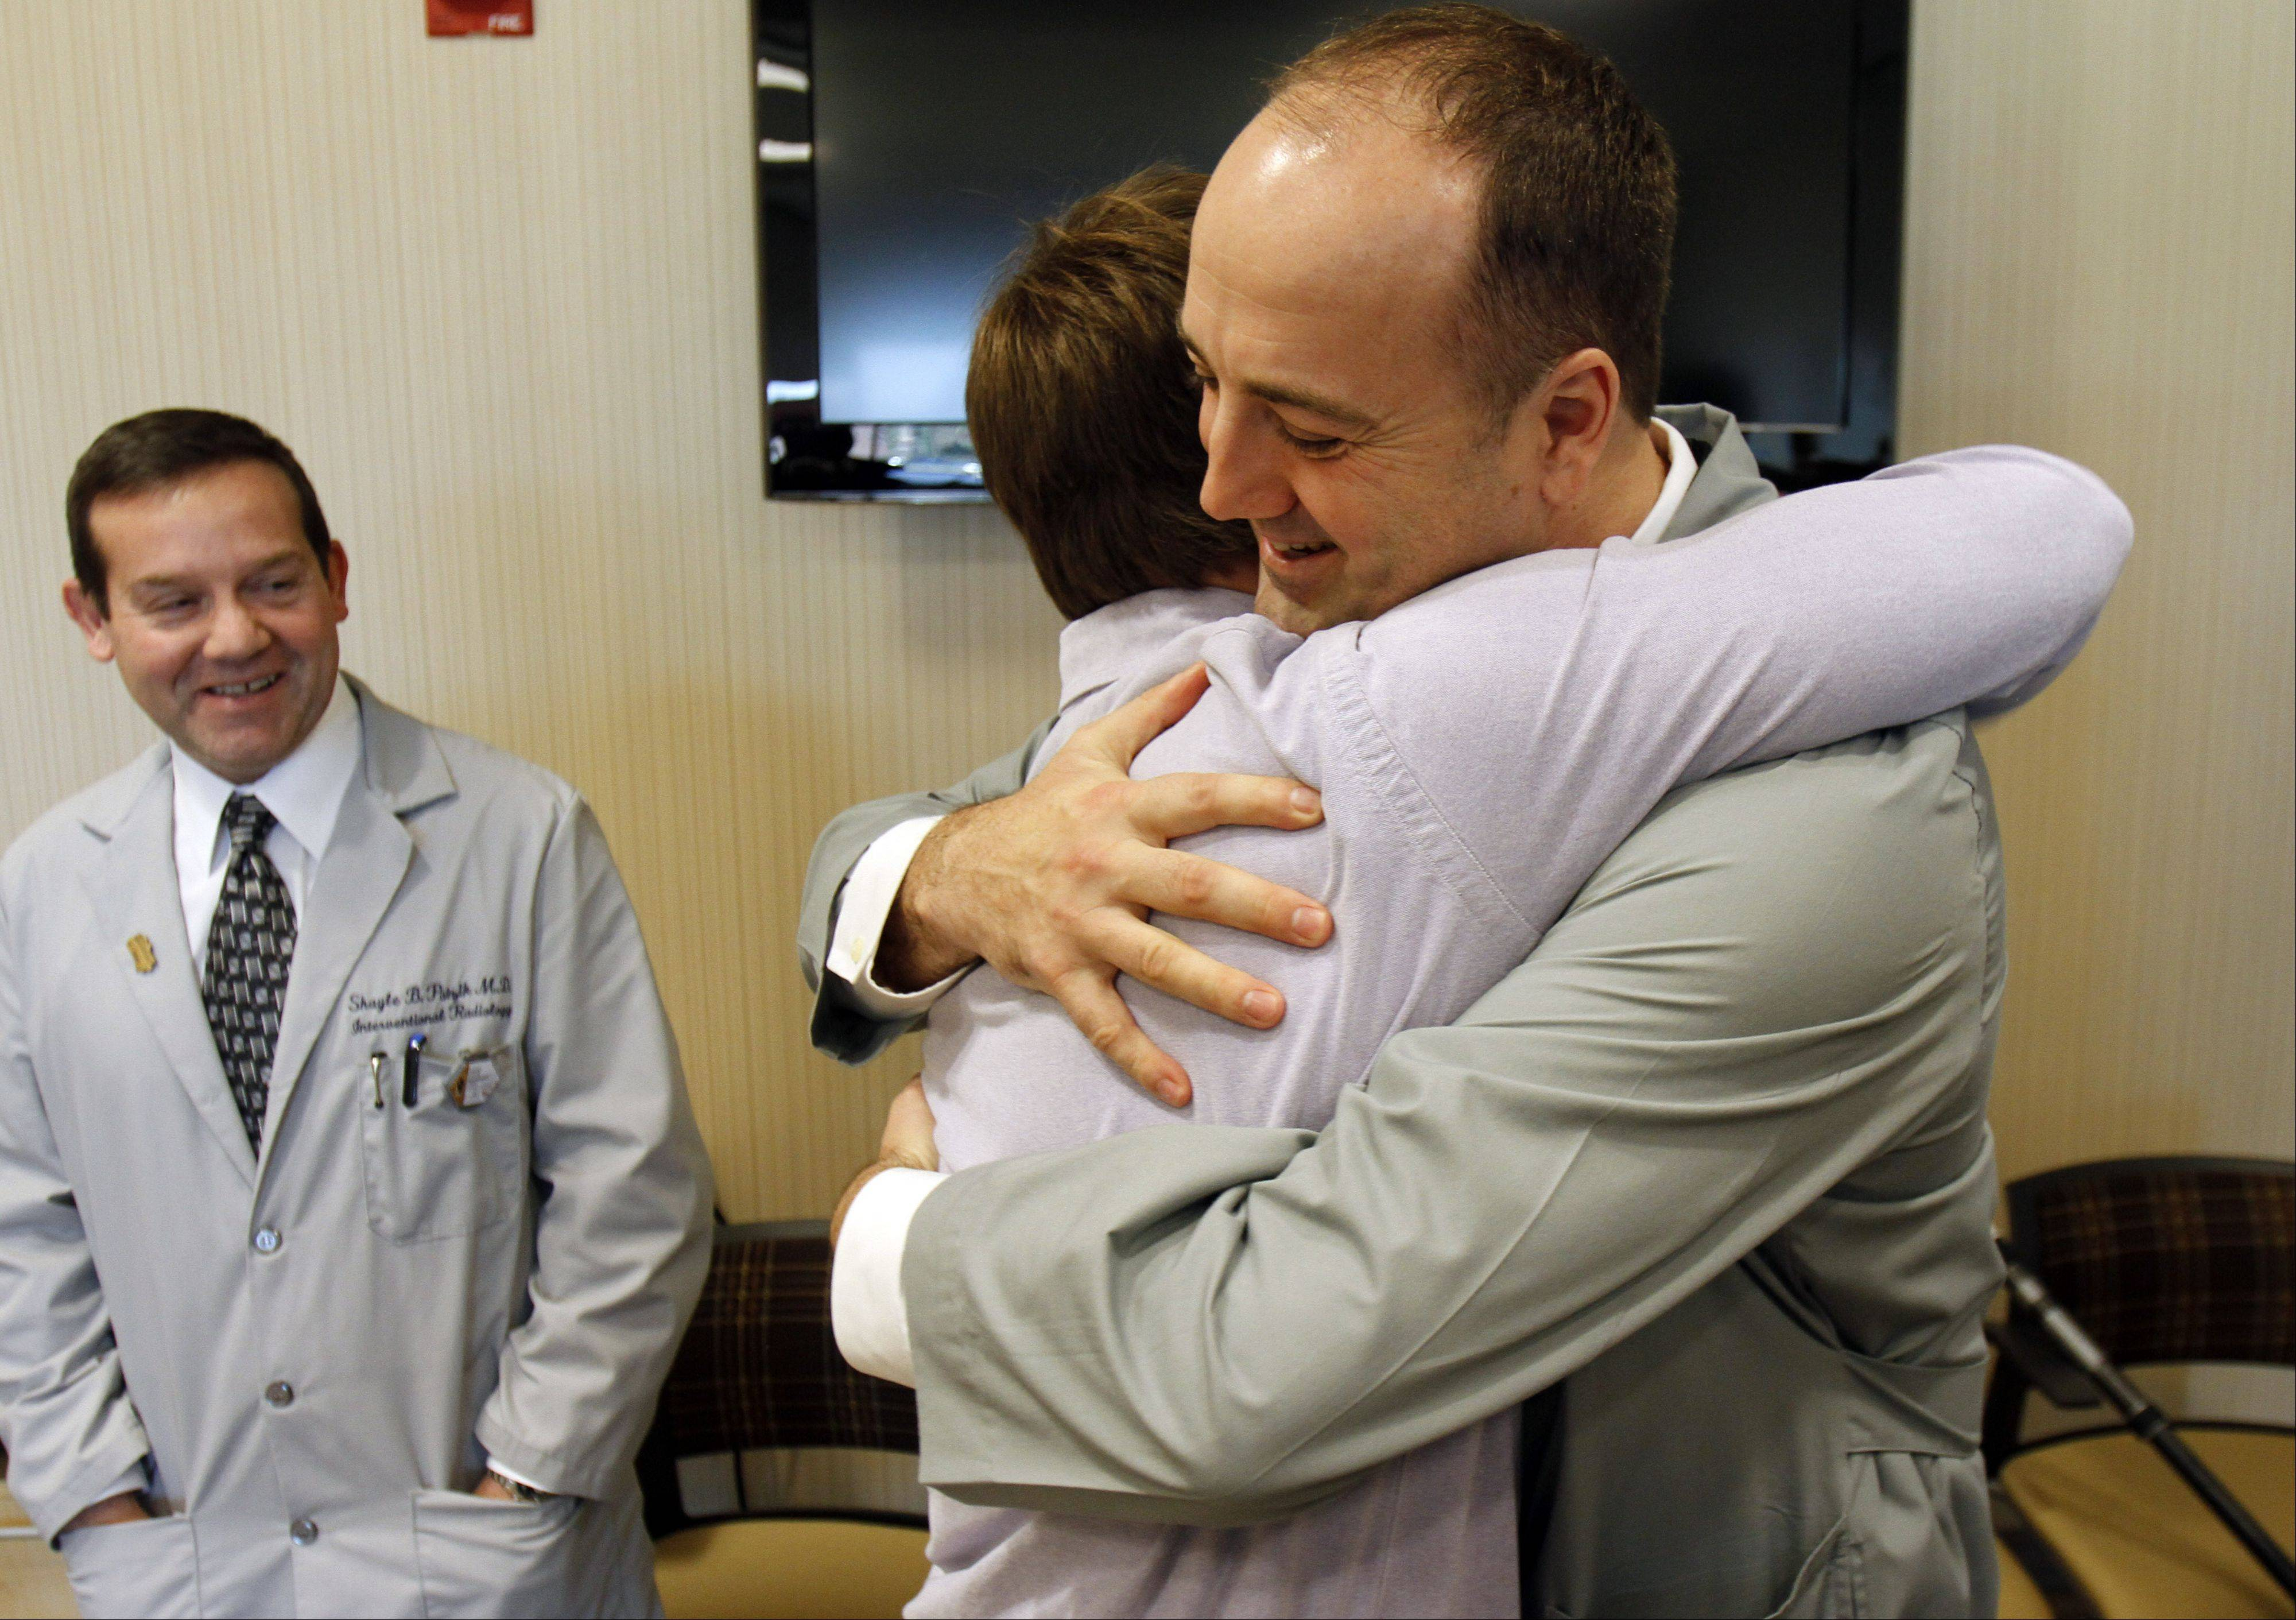 Forrest Ericksen, 18 of Lake Villa, hugs trauma surgeon Dr. William Watson at Advocate Condell Medical Center in Libertyville Wednesday. Watson and other surgeons at Condell's level 1 trauma unit saved Ericksen's life in 2010 after a snowmobile accident.